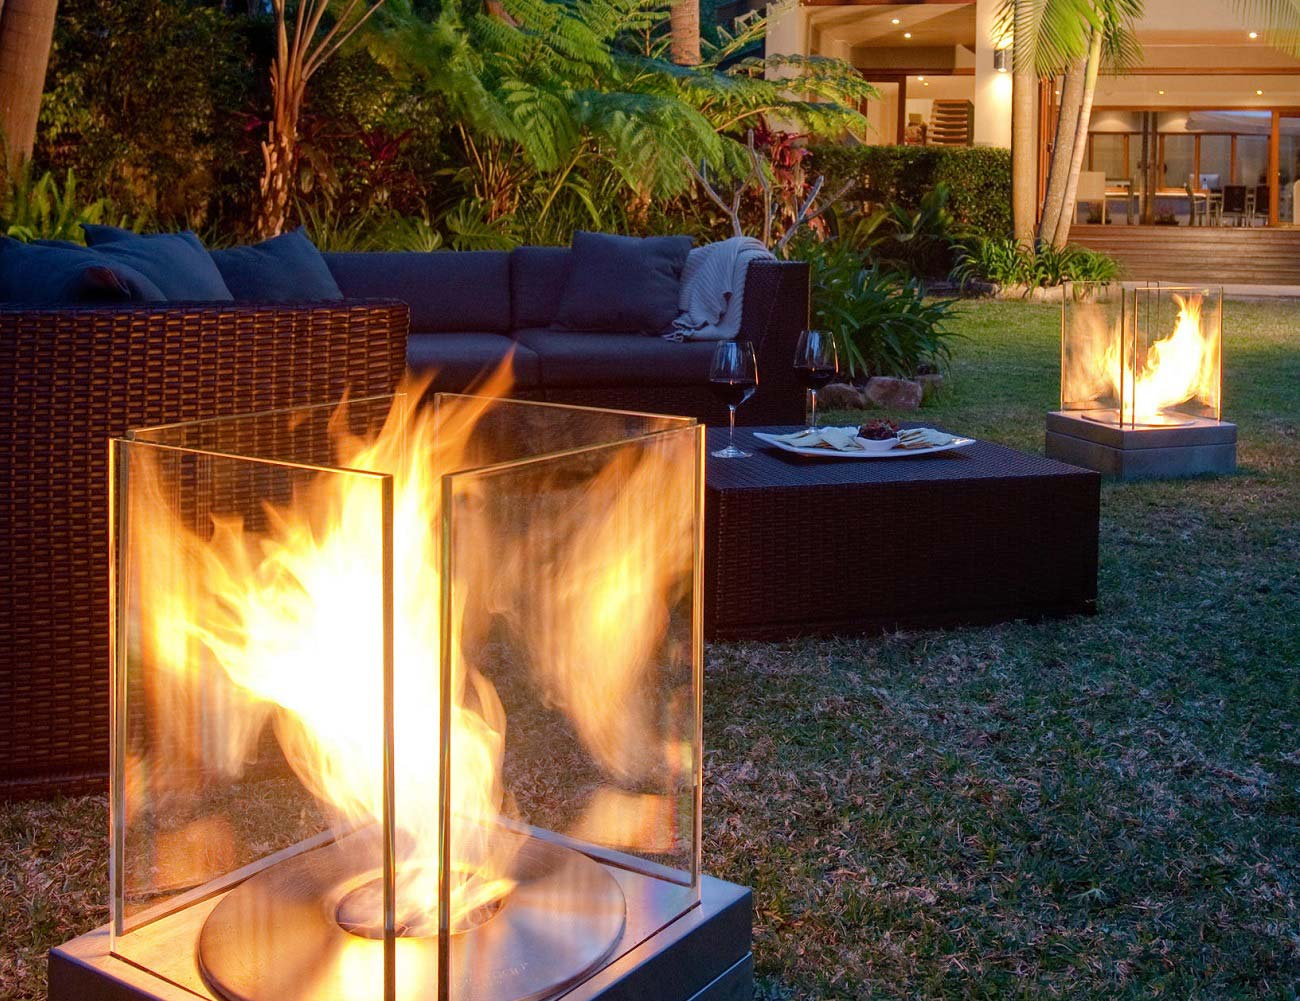 ecosmart fire mini t ventless outdoor fireplace gadget flow